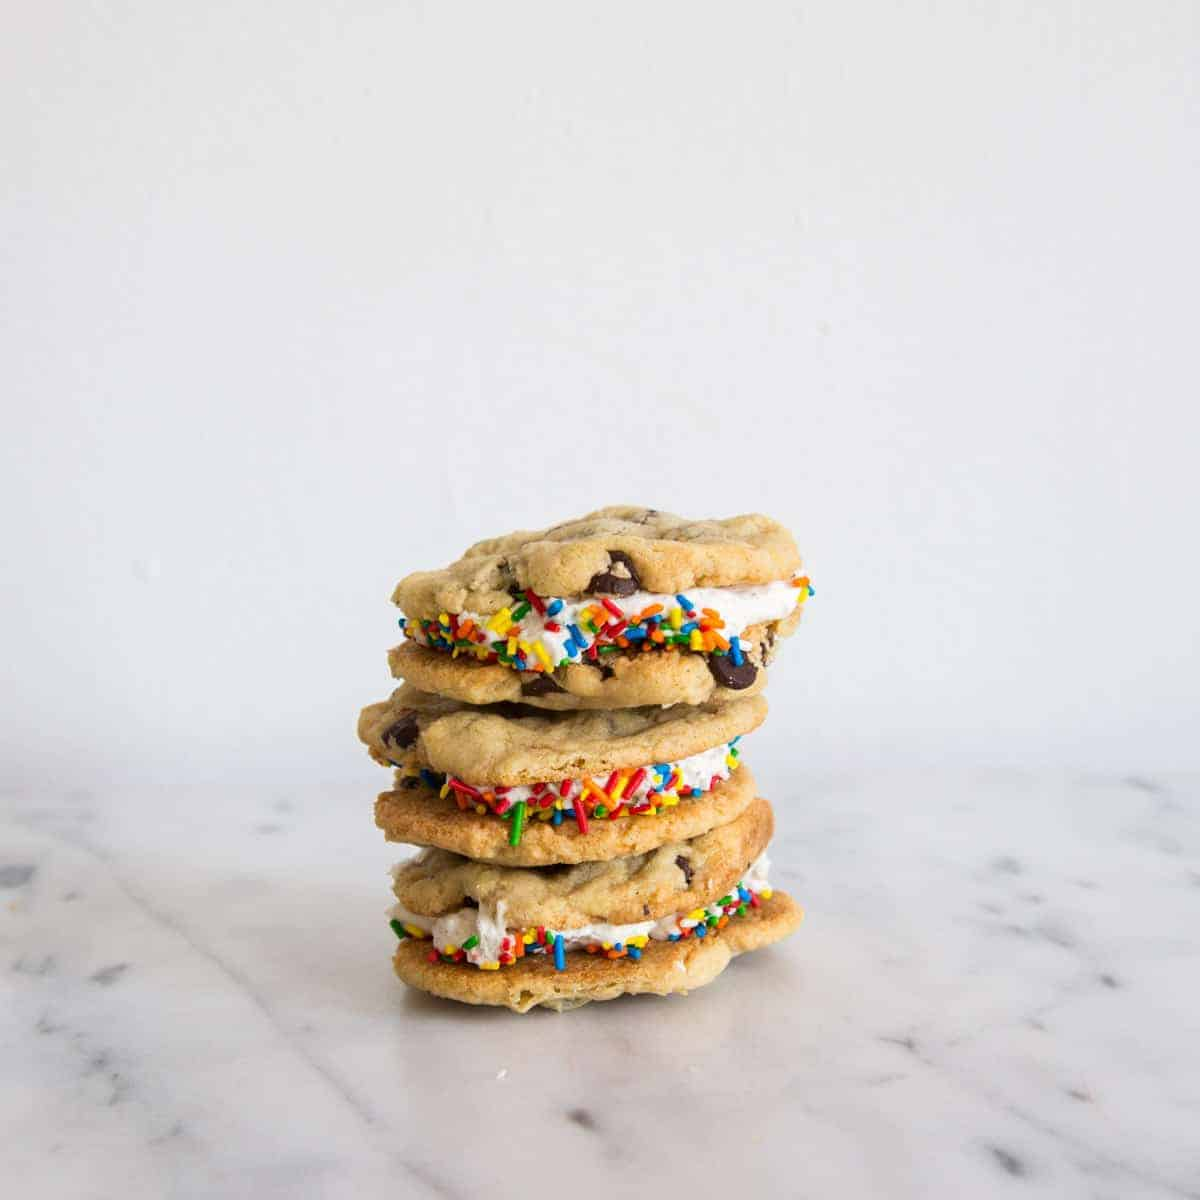 vegan-chocolate-chip-cookie-sandwich